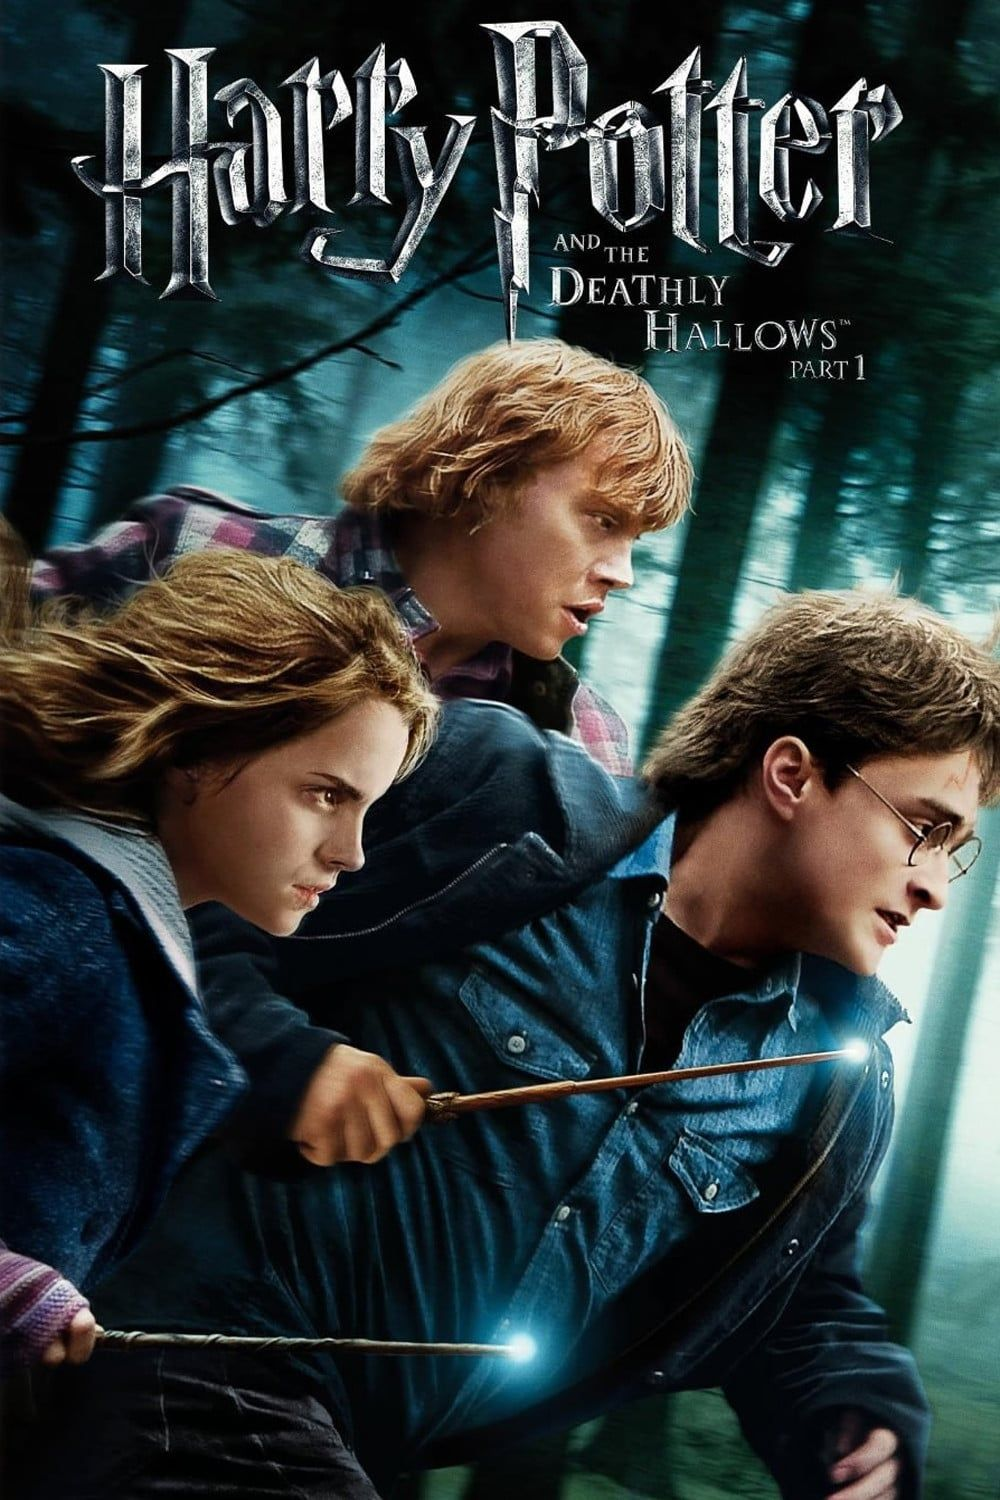 Harry Potter And The Deathly Hallows Part 1 2010 English 720p Bluray Watch Hindi Movies Tamil Deathly Hallows Part 1 Harry Potter Movies Free Movies Online